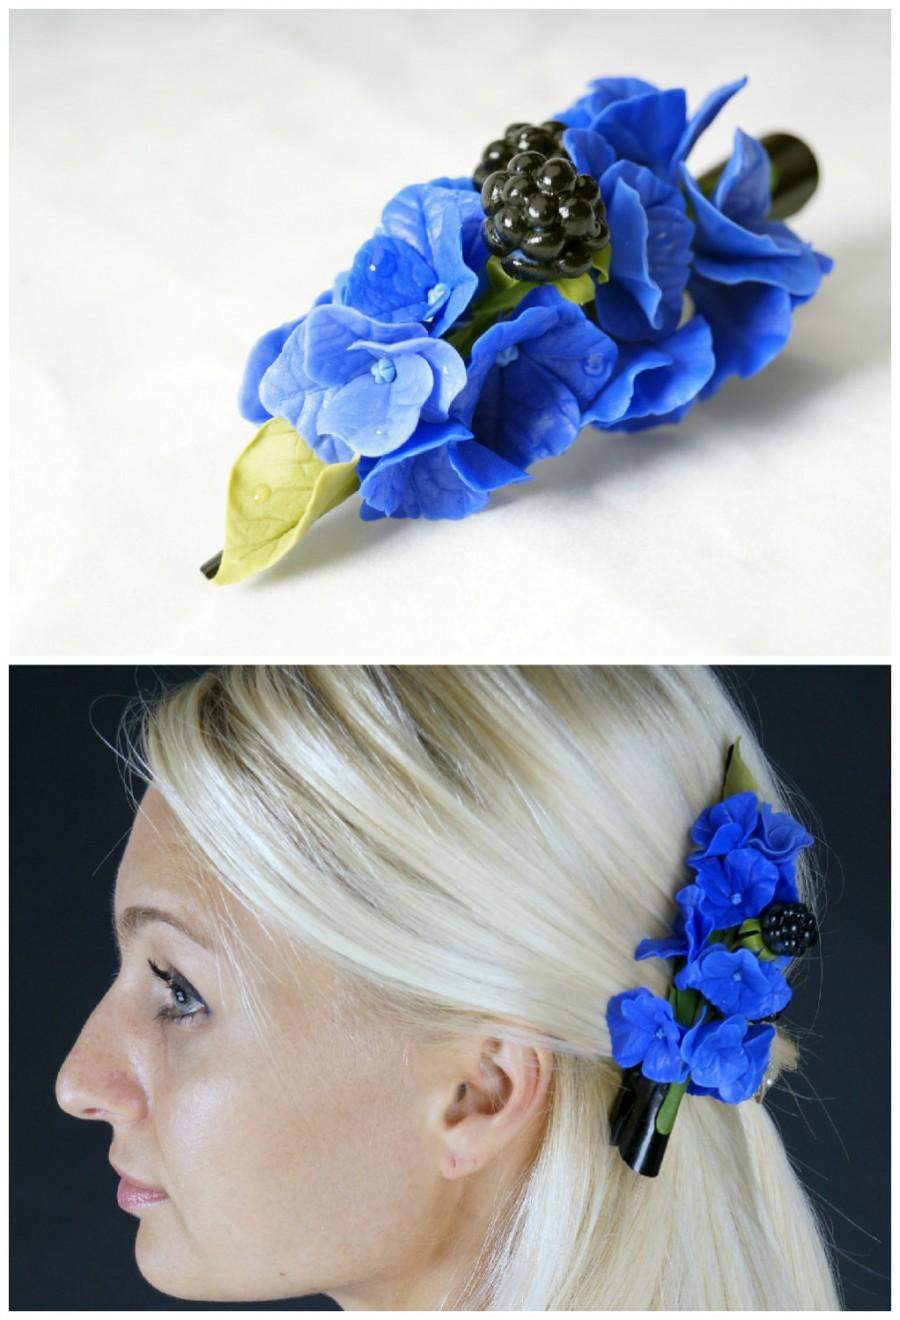 Shop pretty blue flower jewelry and hair accessories in shades of Sapphire, Cobalt, navy and Light Blue. Blue tones can offer a casual style with denim or a formal style too.